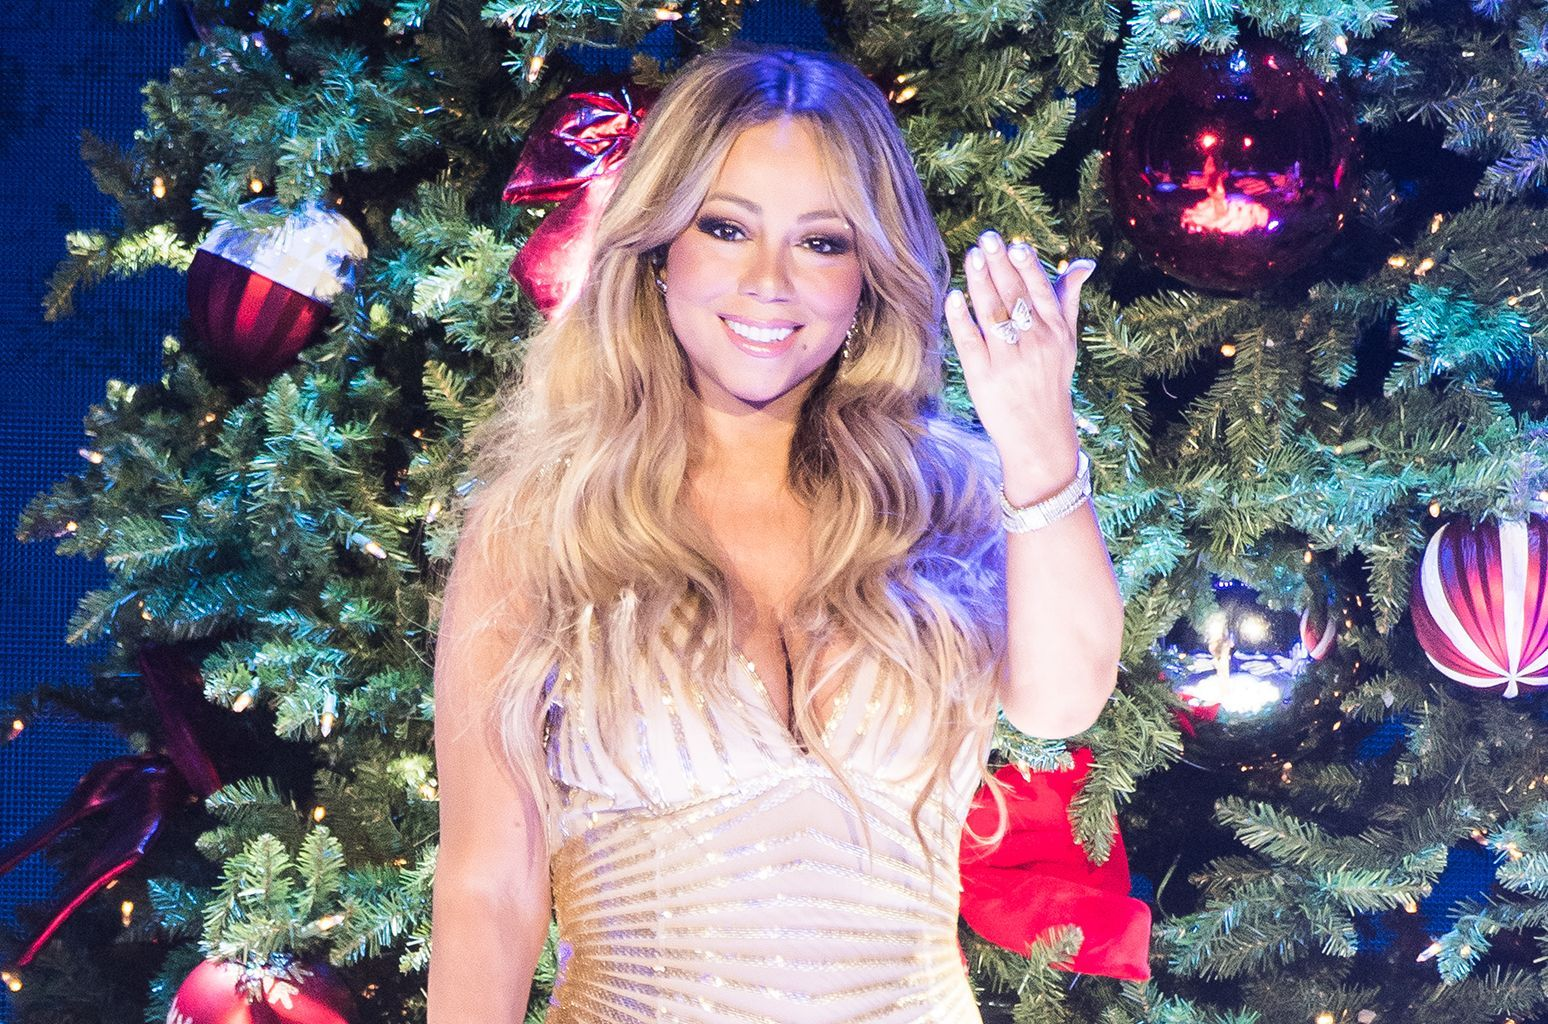 Mariah Carey Just Broke Three Guinness World Records With All I Want For Christmas Is You Mariah Carey Christmas Mariah Carey Mariah